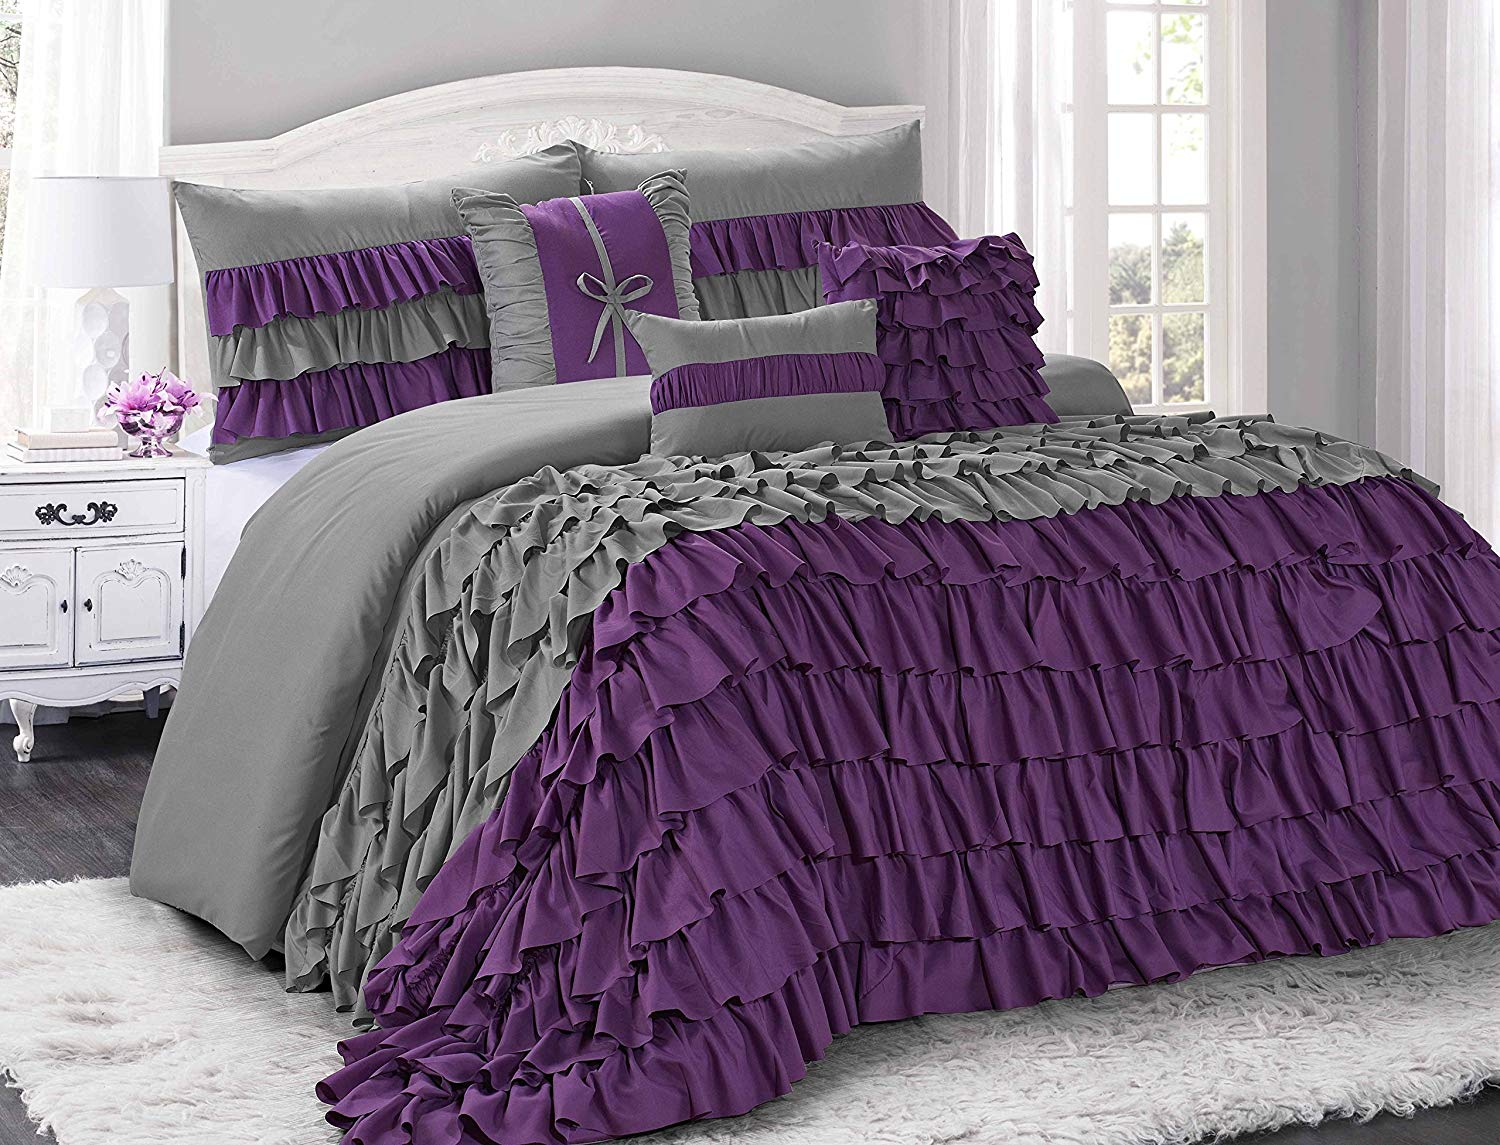 Hig 7 Piece Comforter Set King Purple And Gray Microfiber